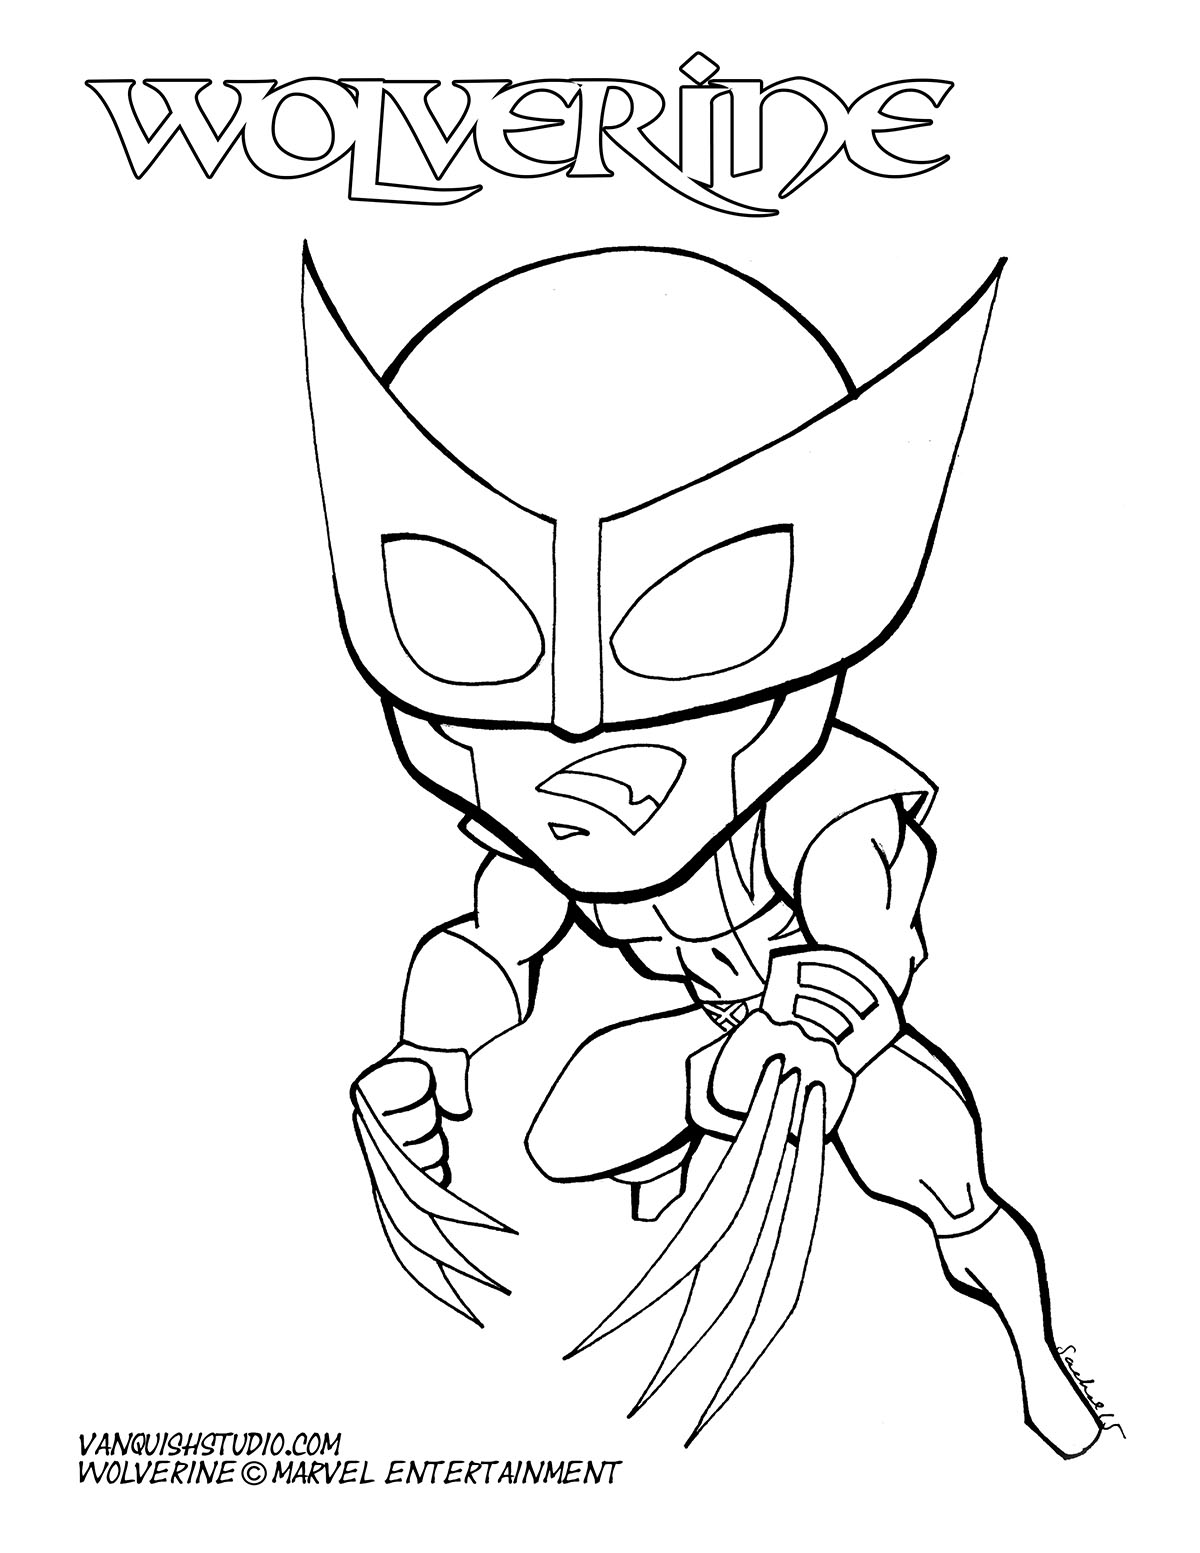 Coloring Pages Vanquish Studio